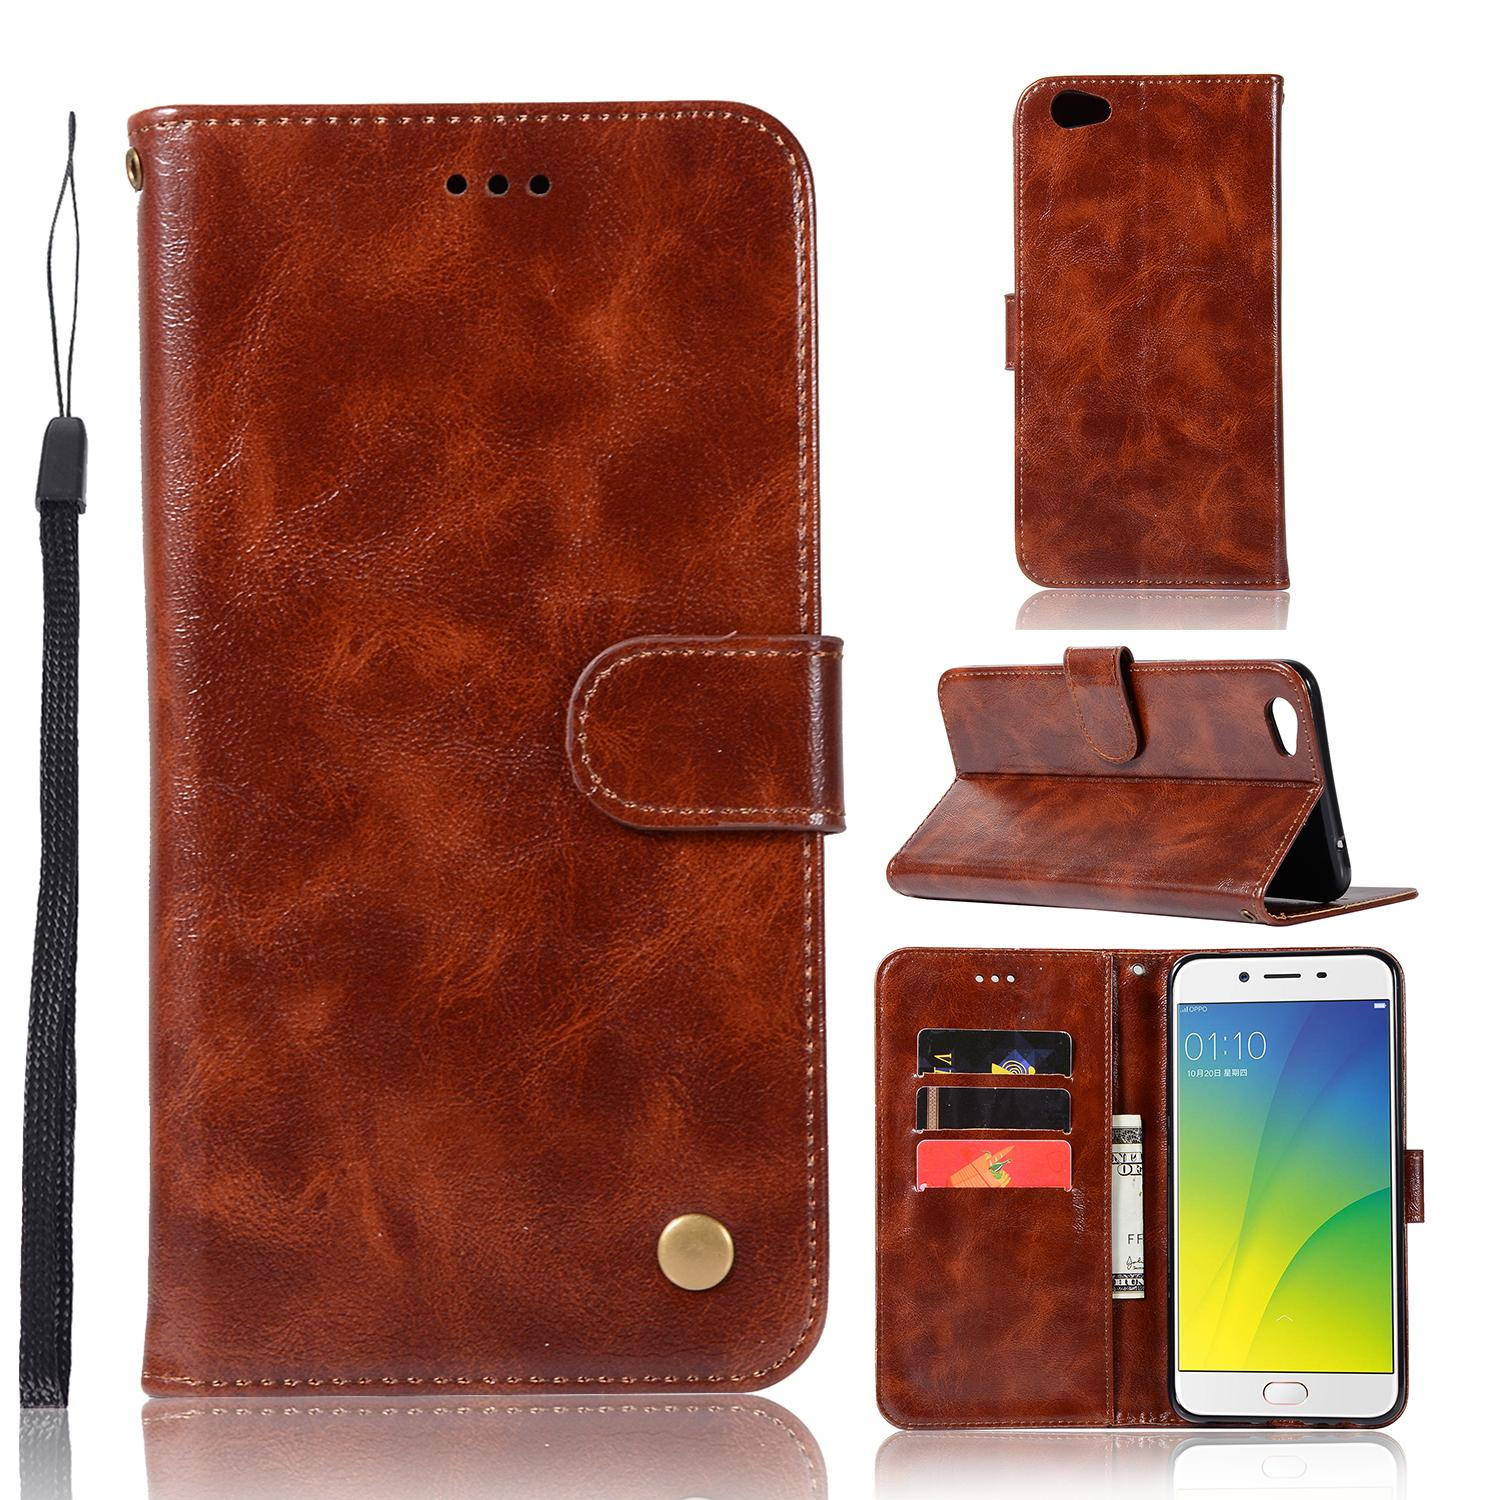 Casing For Oppo F3 Plus/r9s Plus,reto Leather Wallet Case Magnetic Double Card Holder Flip Cover By Life Goes On.